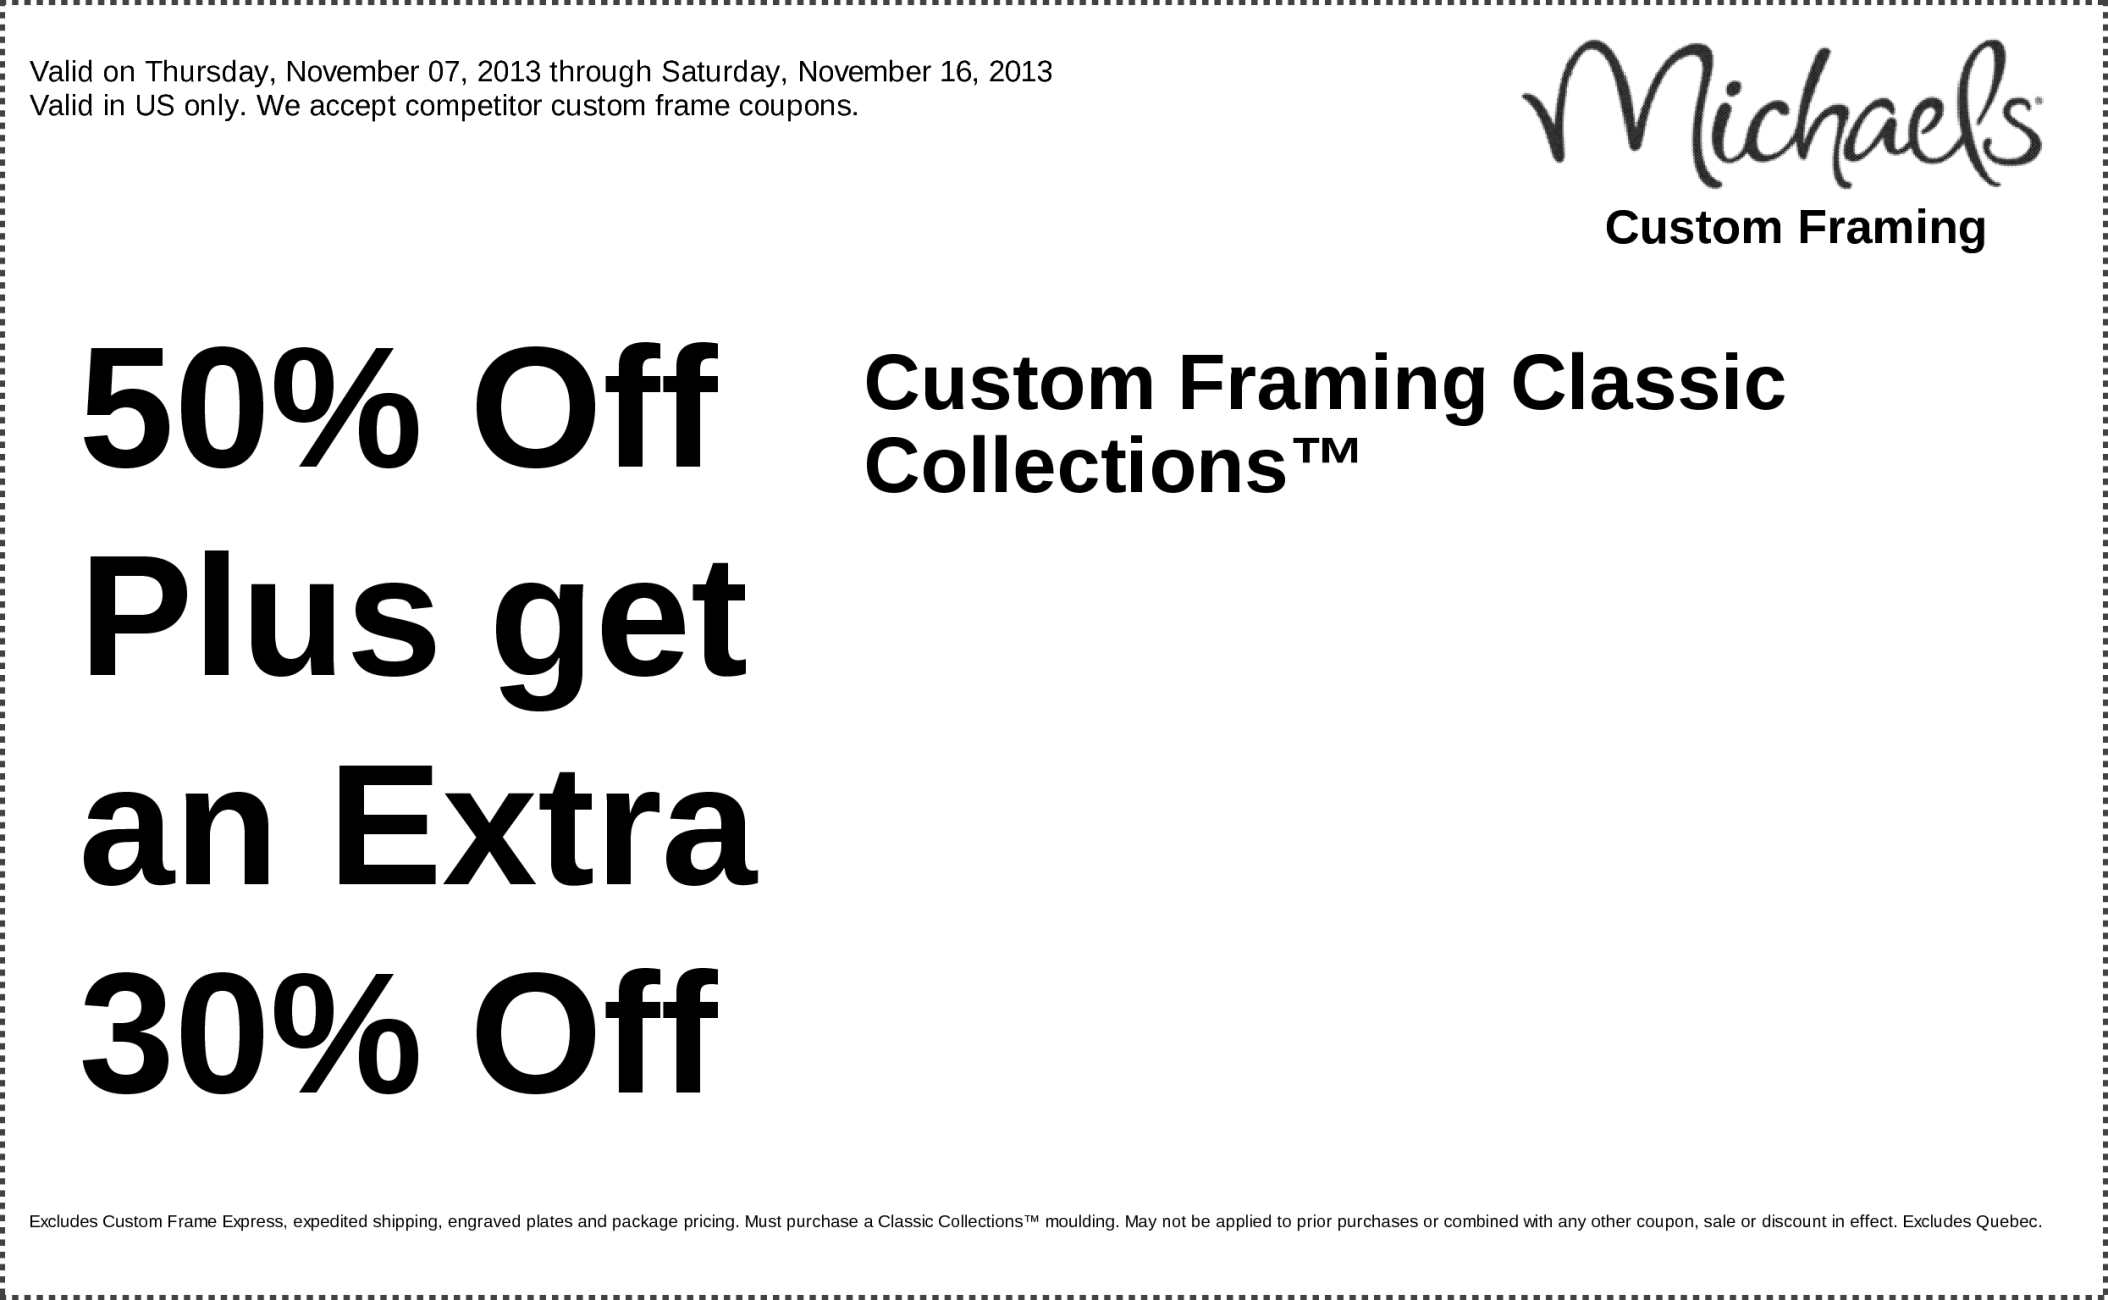 michaels coupons custom framing 60 off plus get an extra 15 off entire custom framing order httpswwwfac pinteres - Michaels Frame Coupon